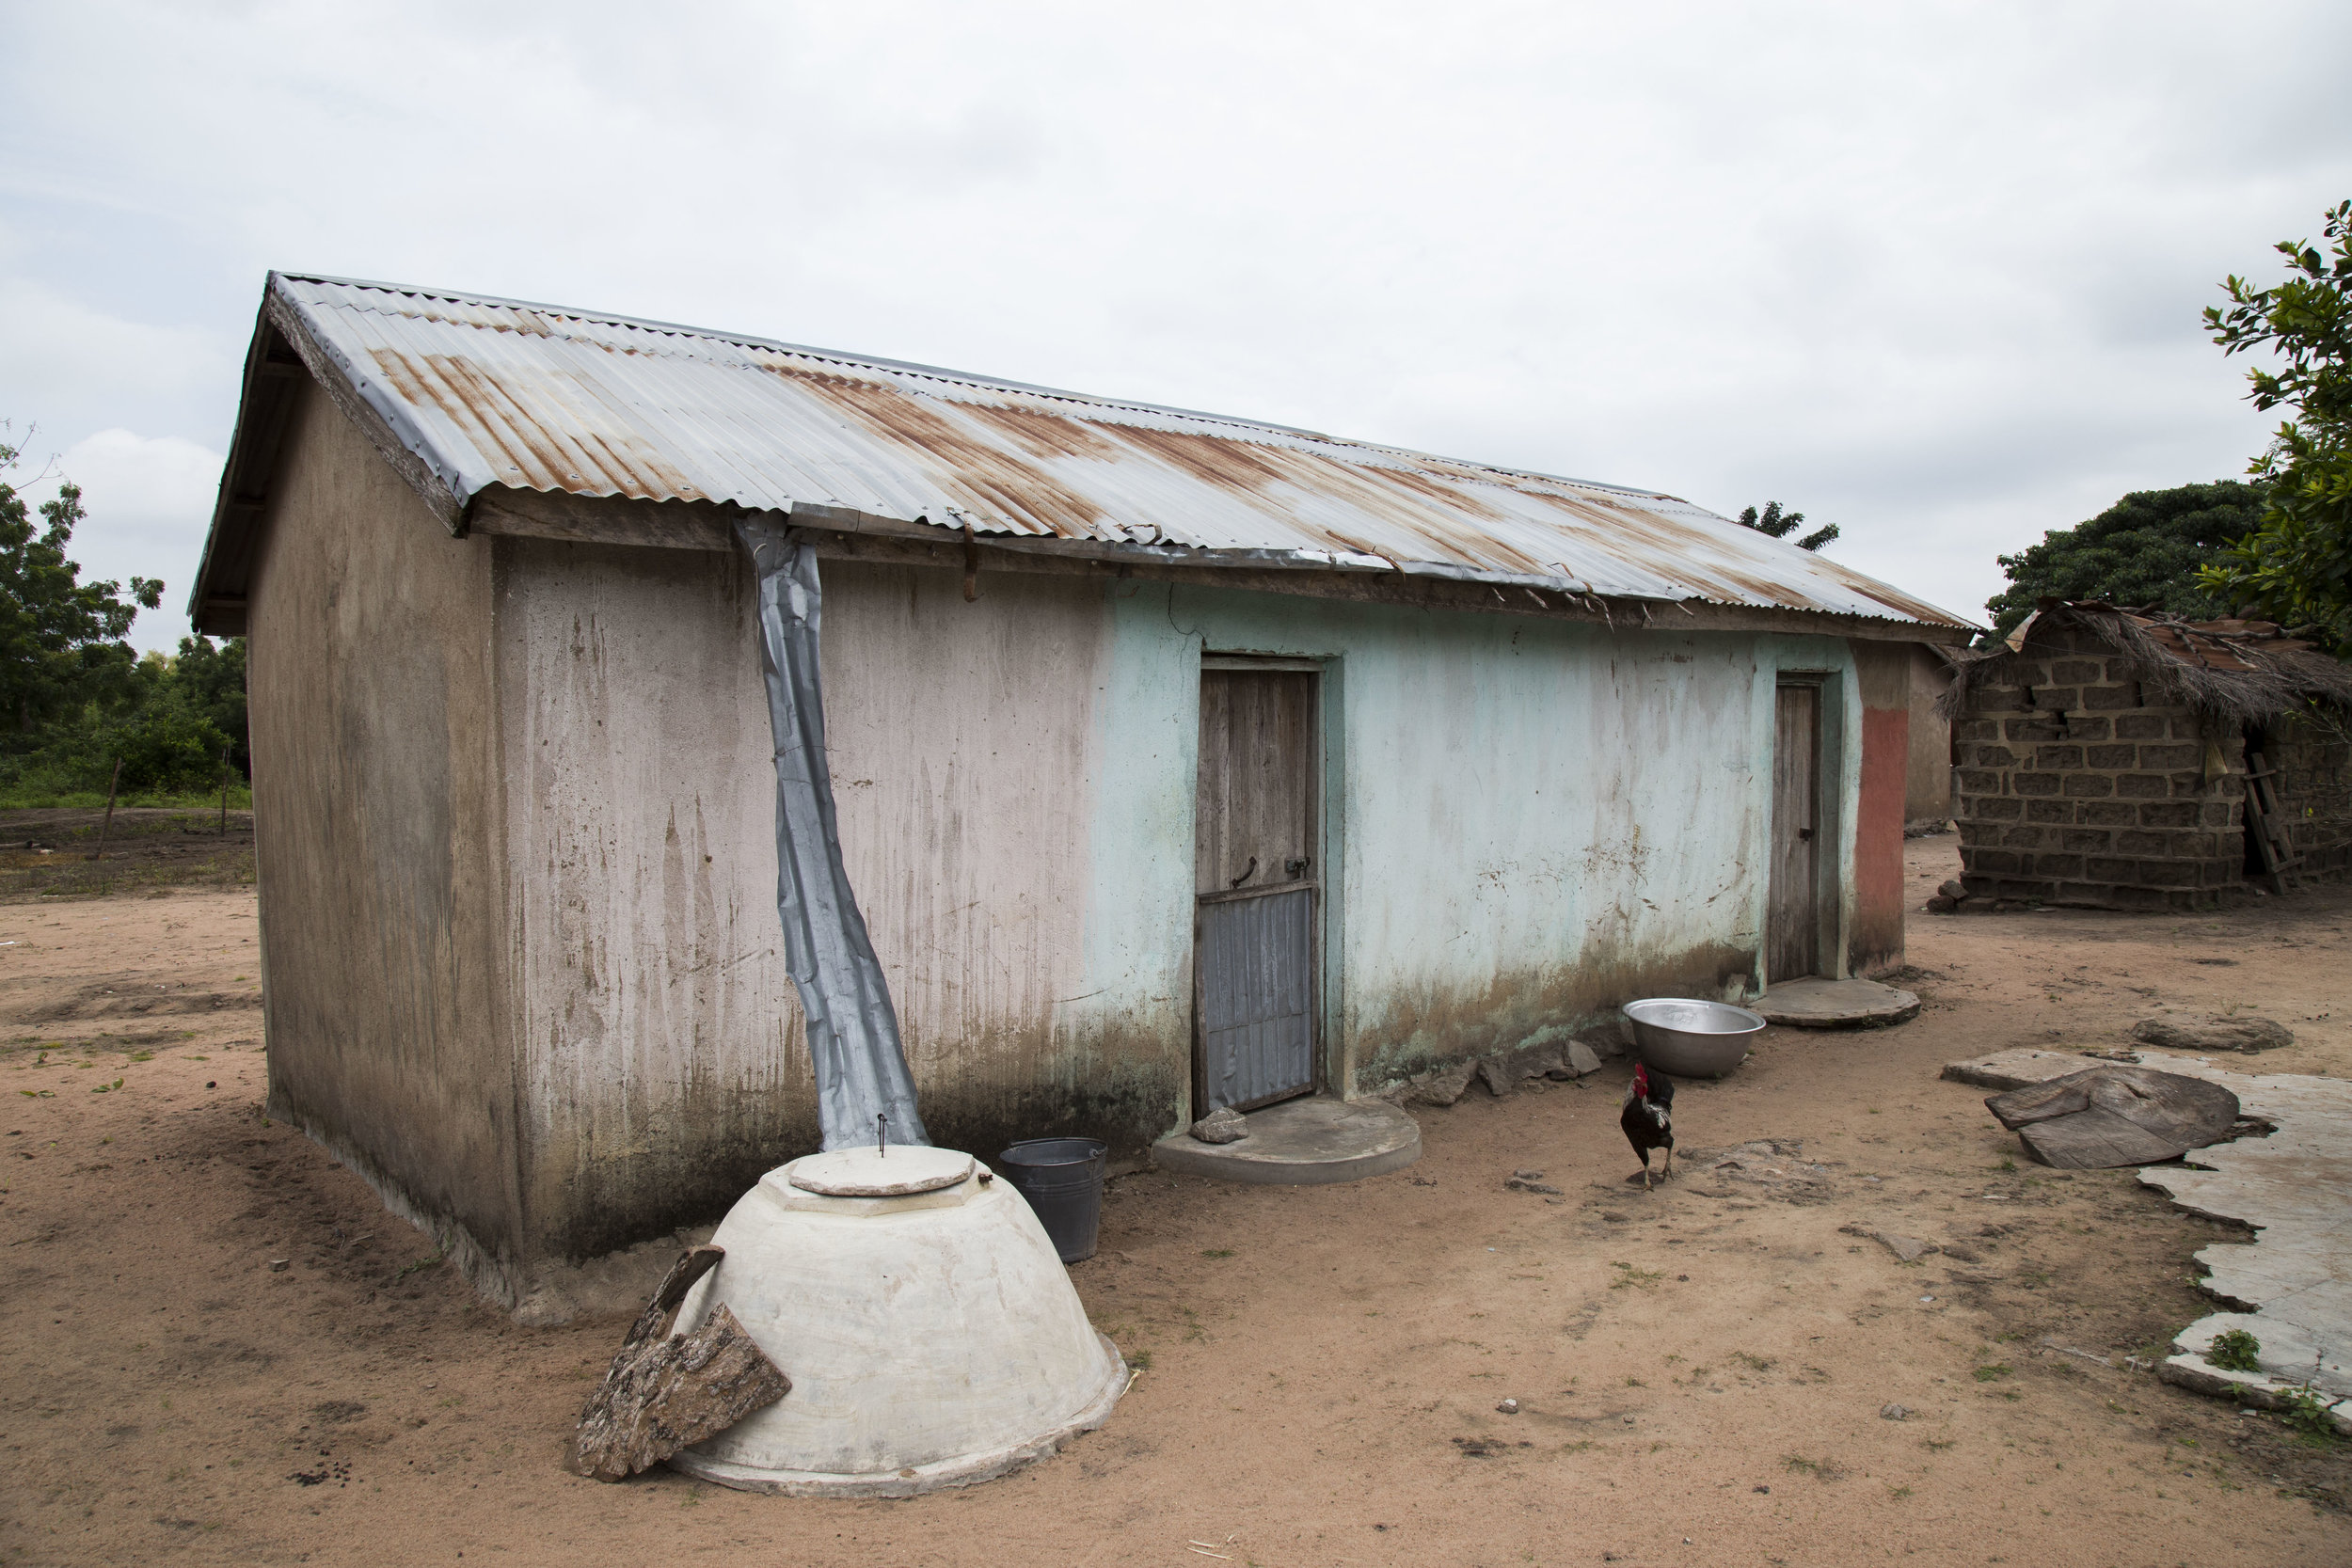 This image shows a rain water collection system in a village